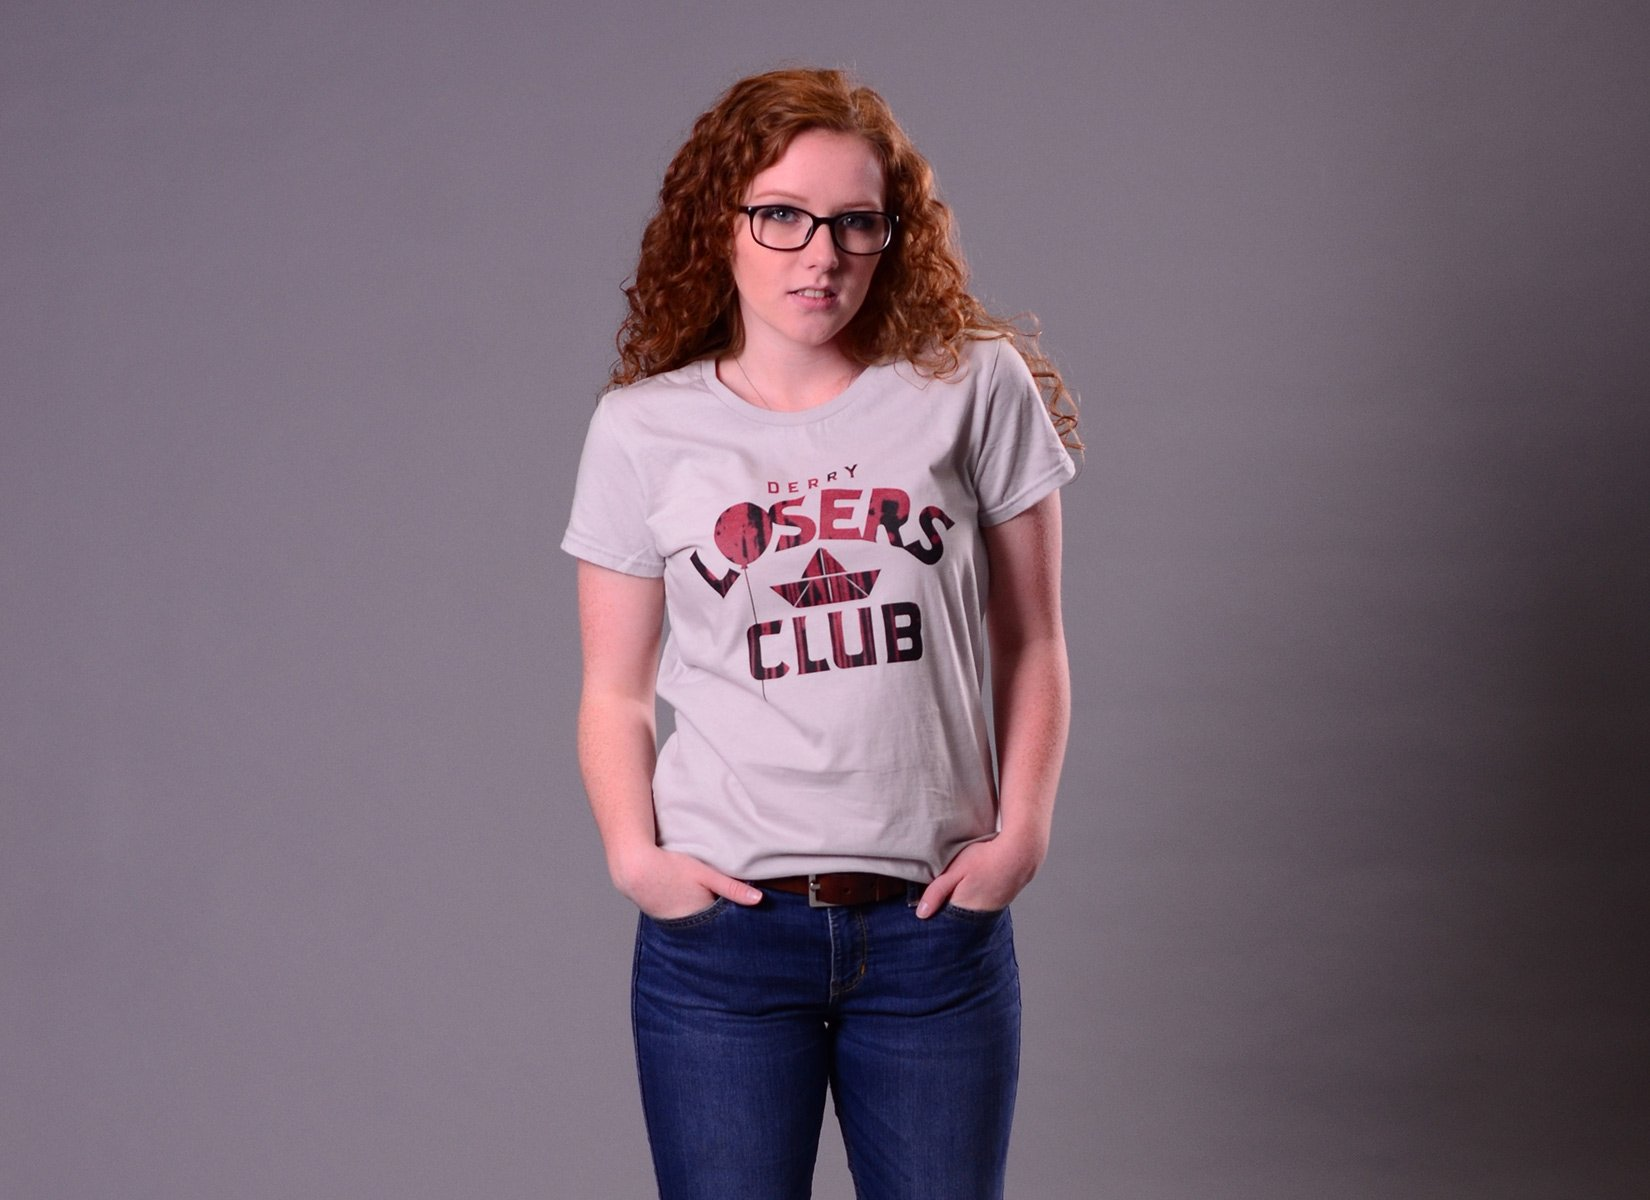 Derry Losers Club on Womens T-Shirt